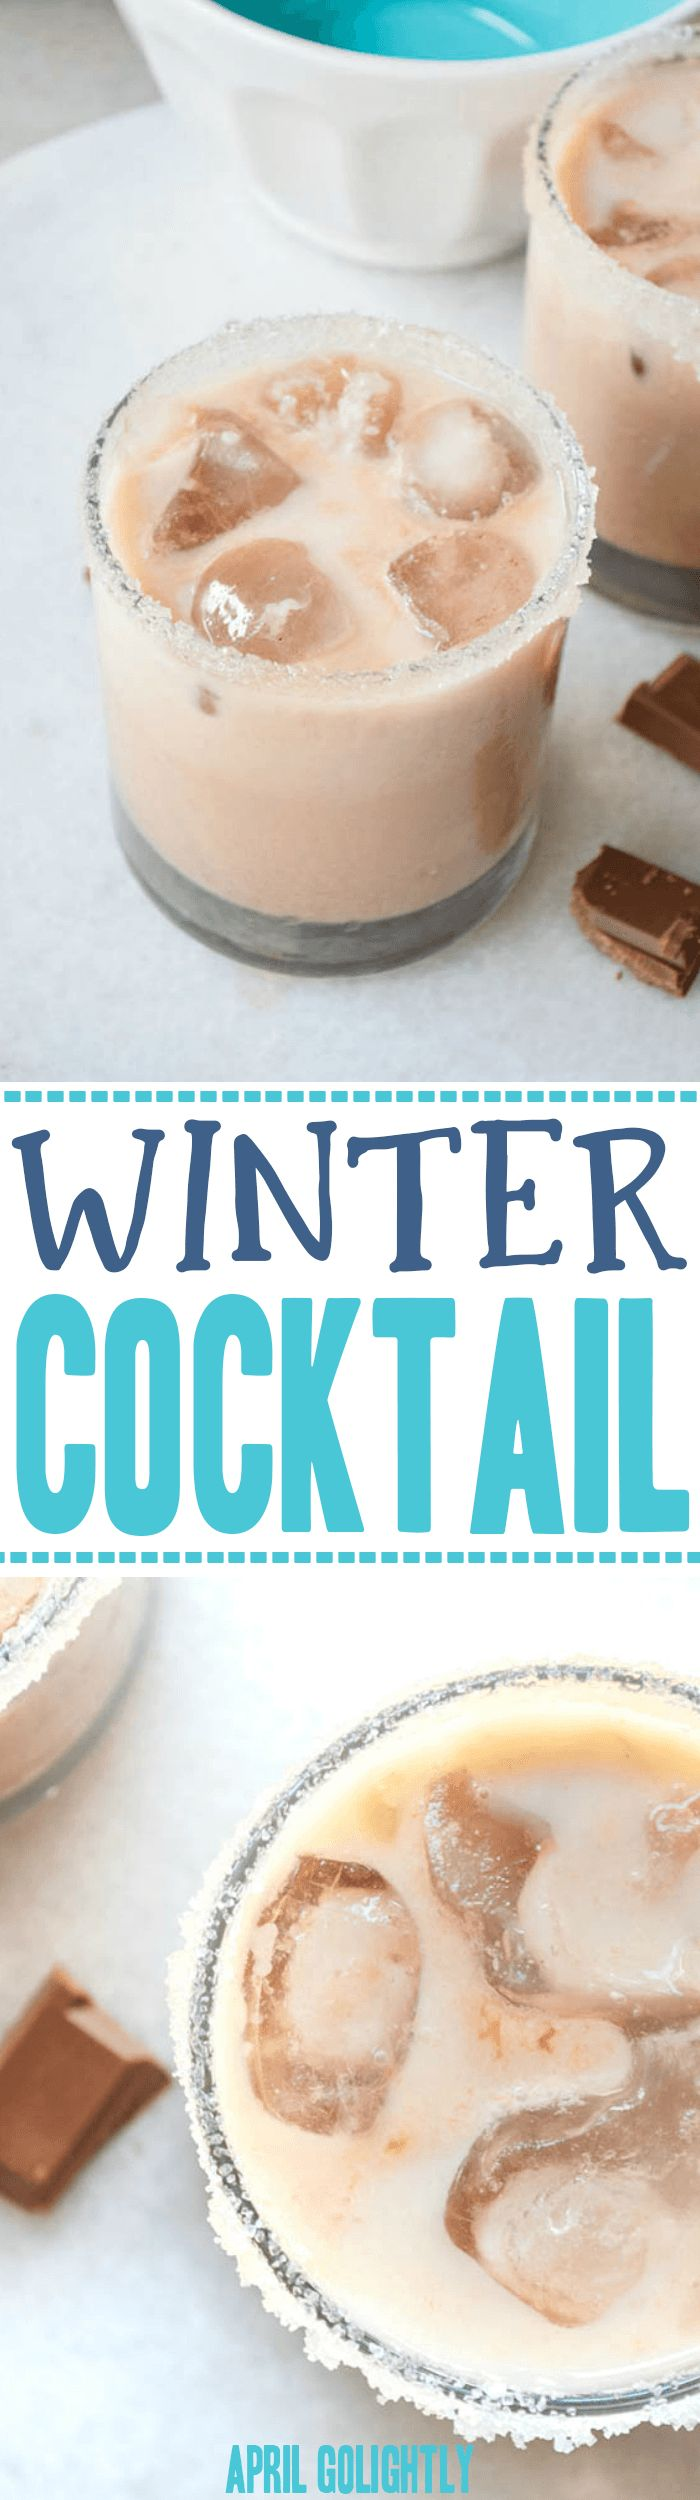 Easy Winter Cocktail Recipe with Vodka or Vanilla Vodka - also recipe for mocktail - perfect for holiday parties and beyond